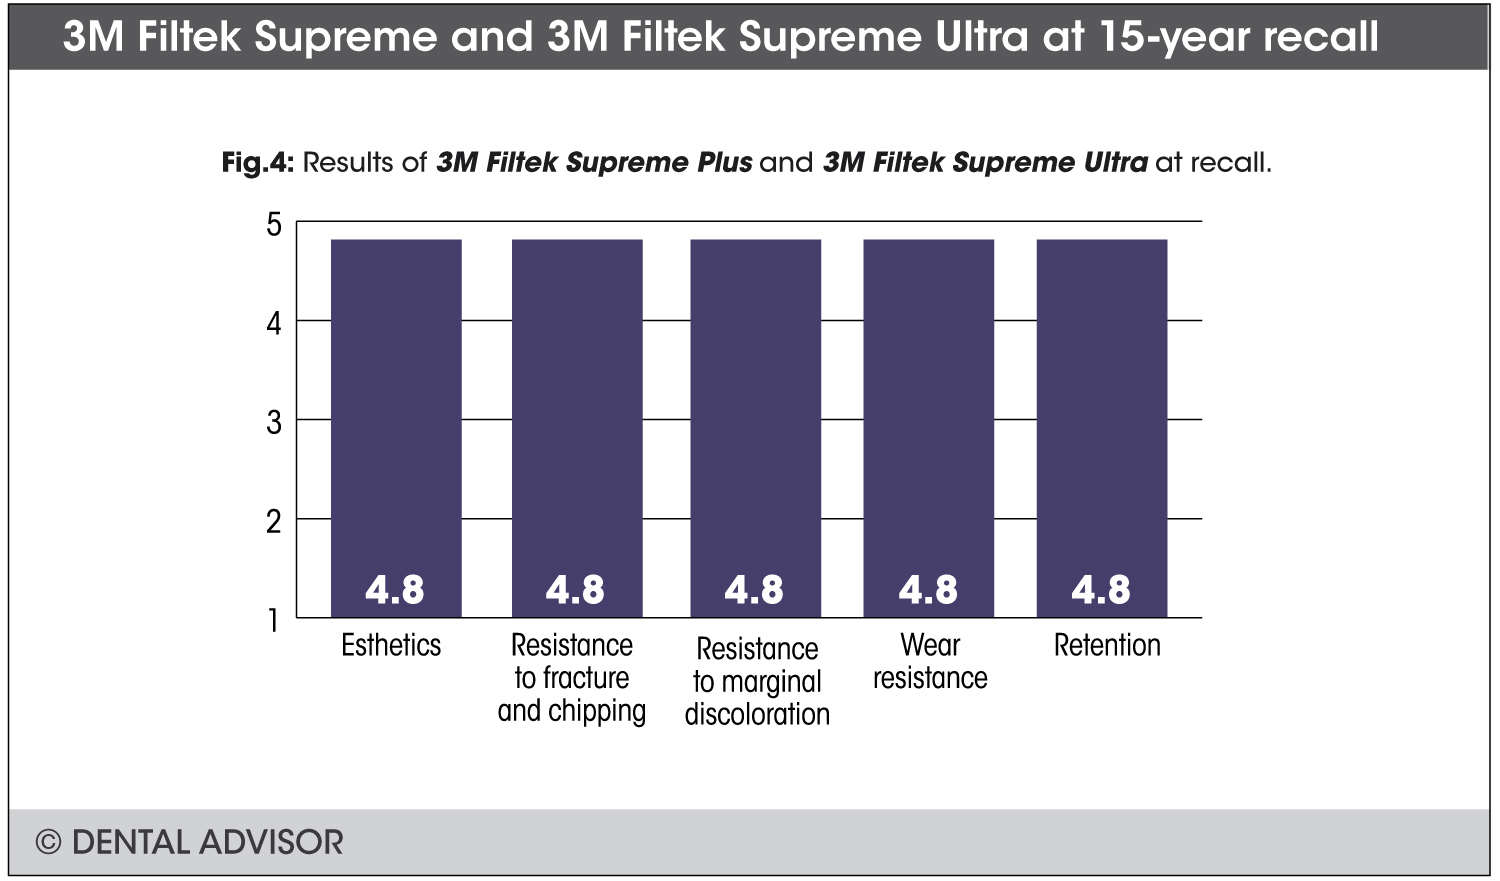 filteksupremeultrafeatures